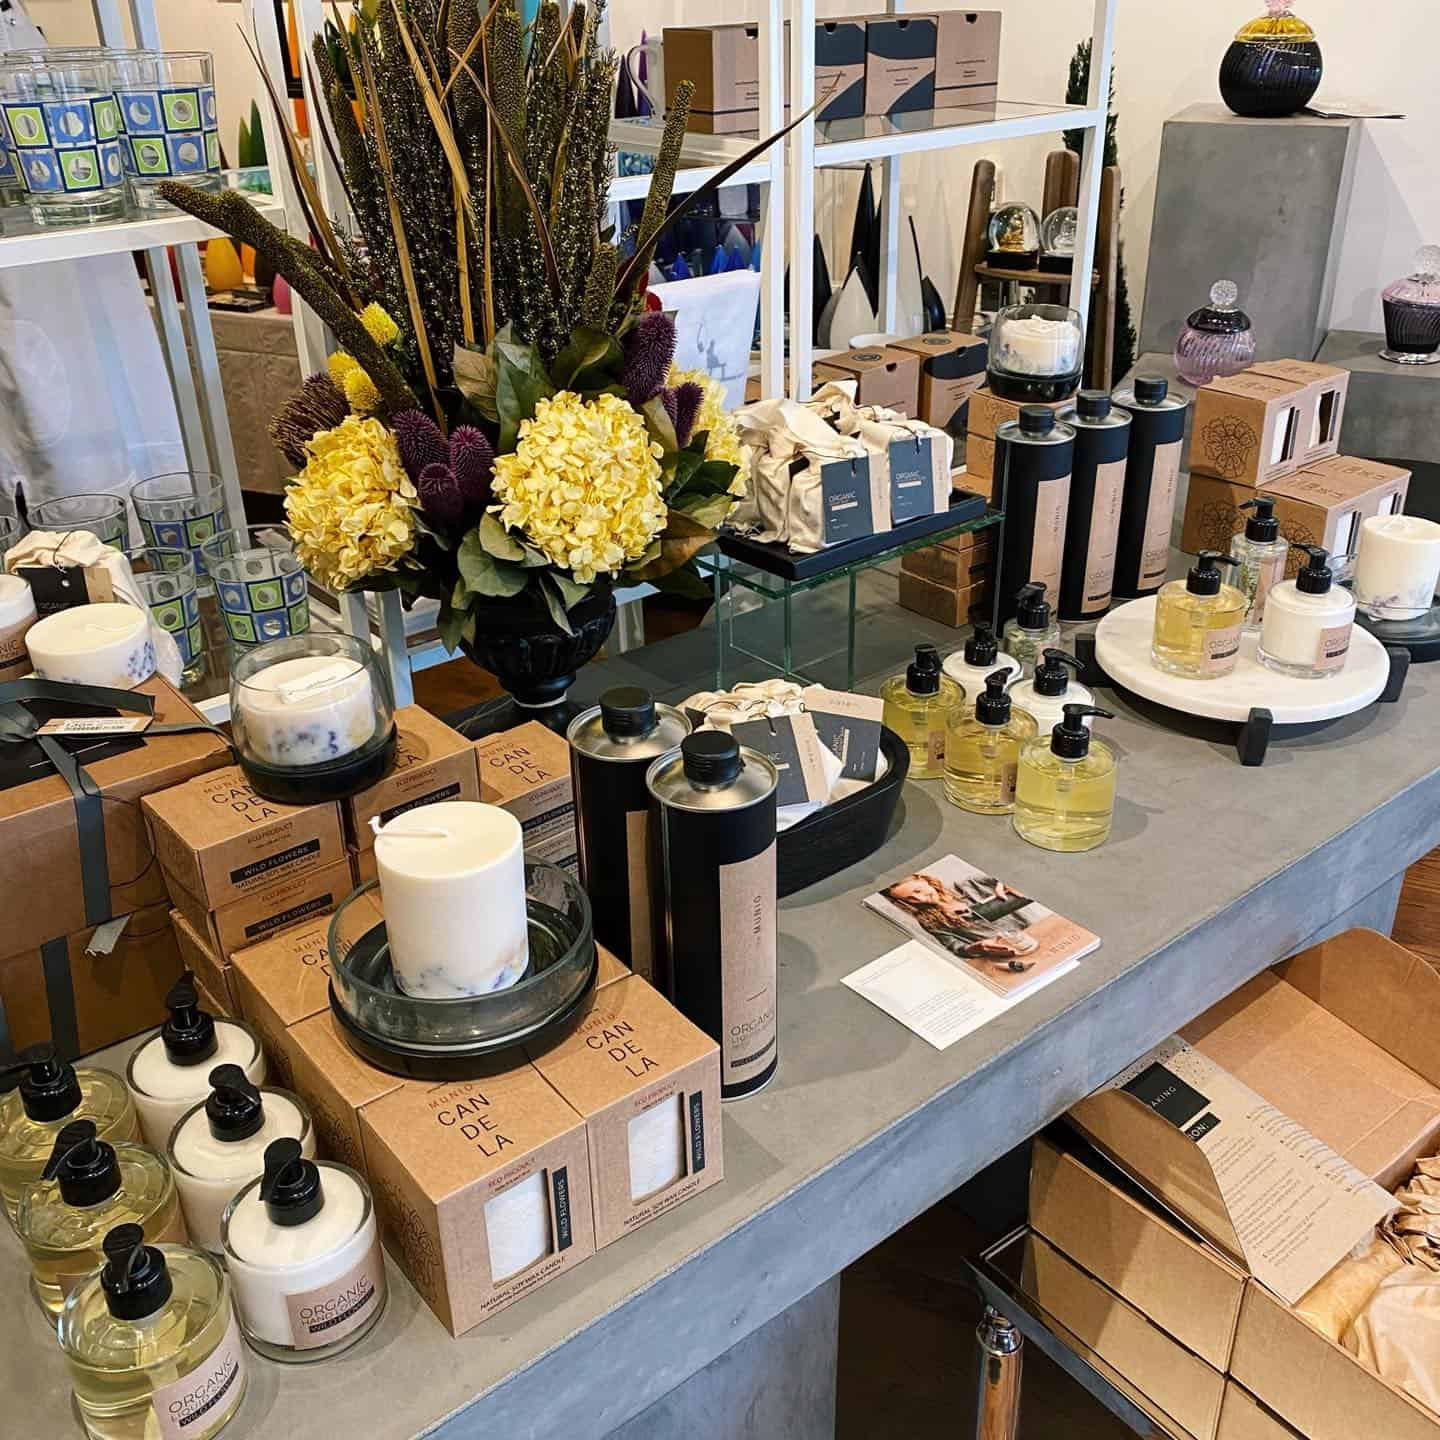 The Munio - Soap, Skin Care and Candles